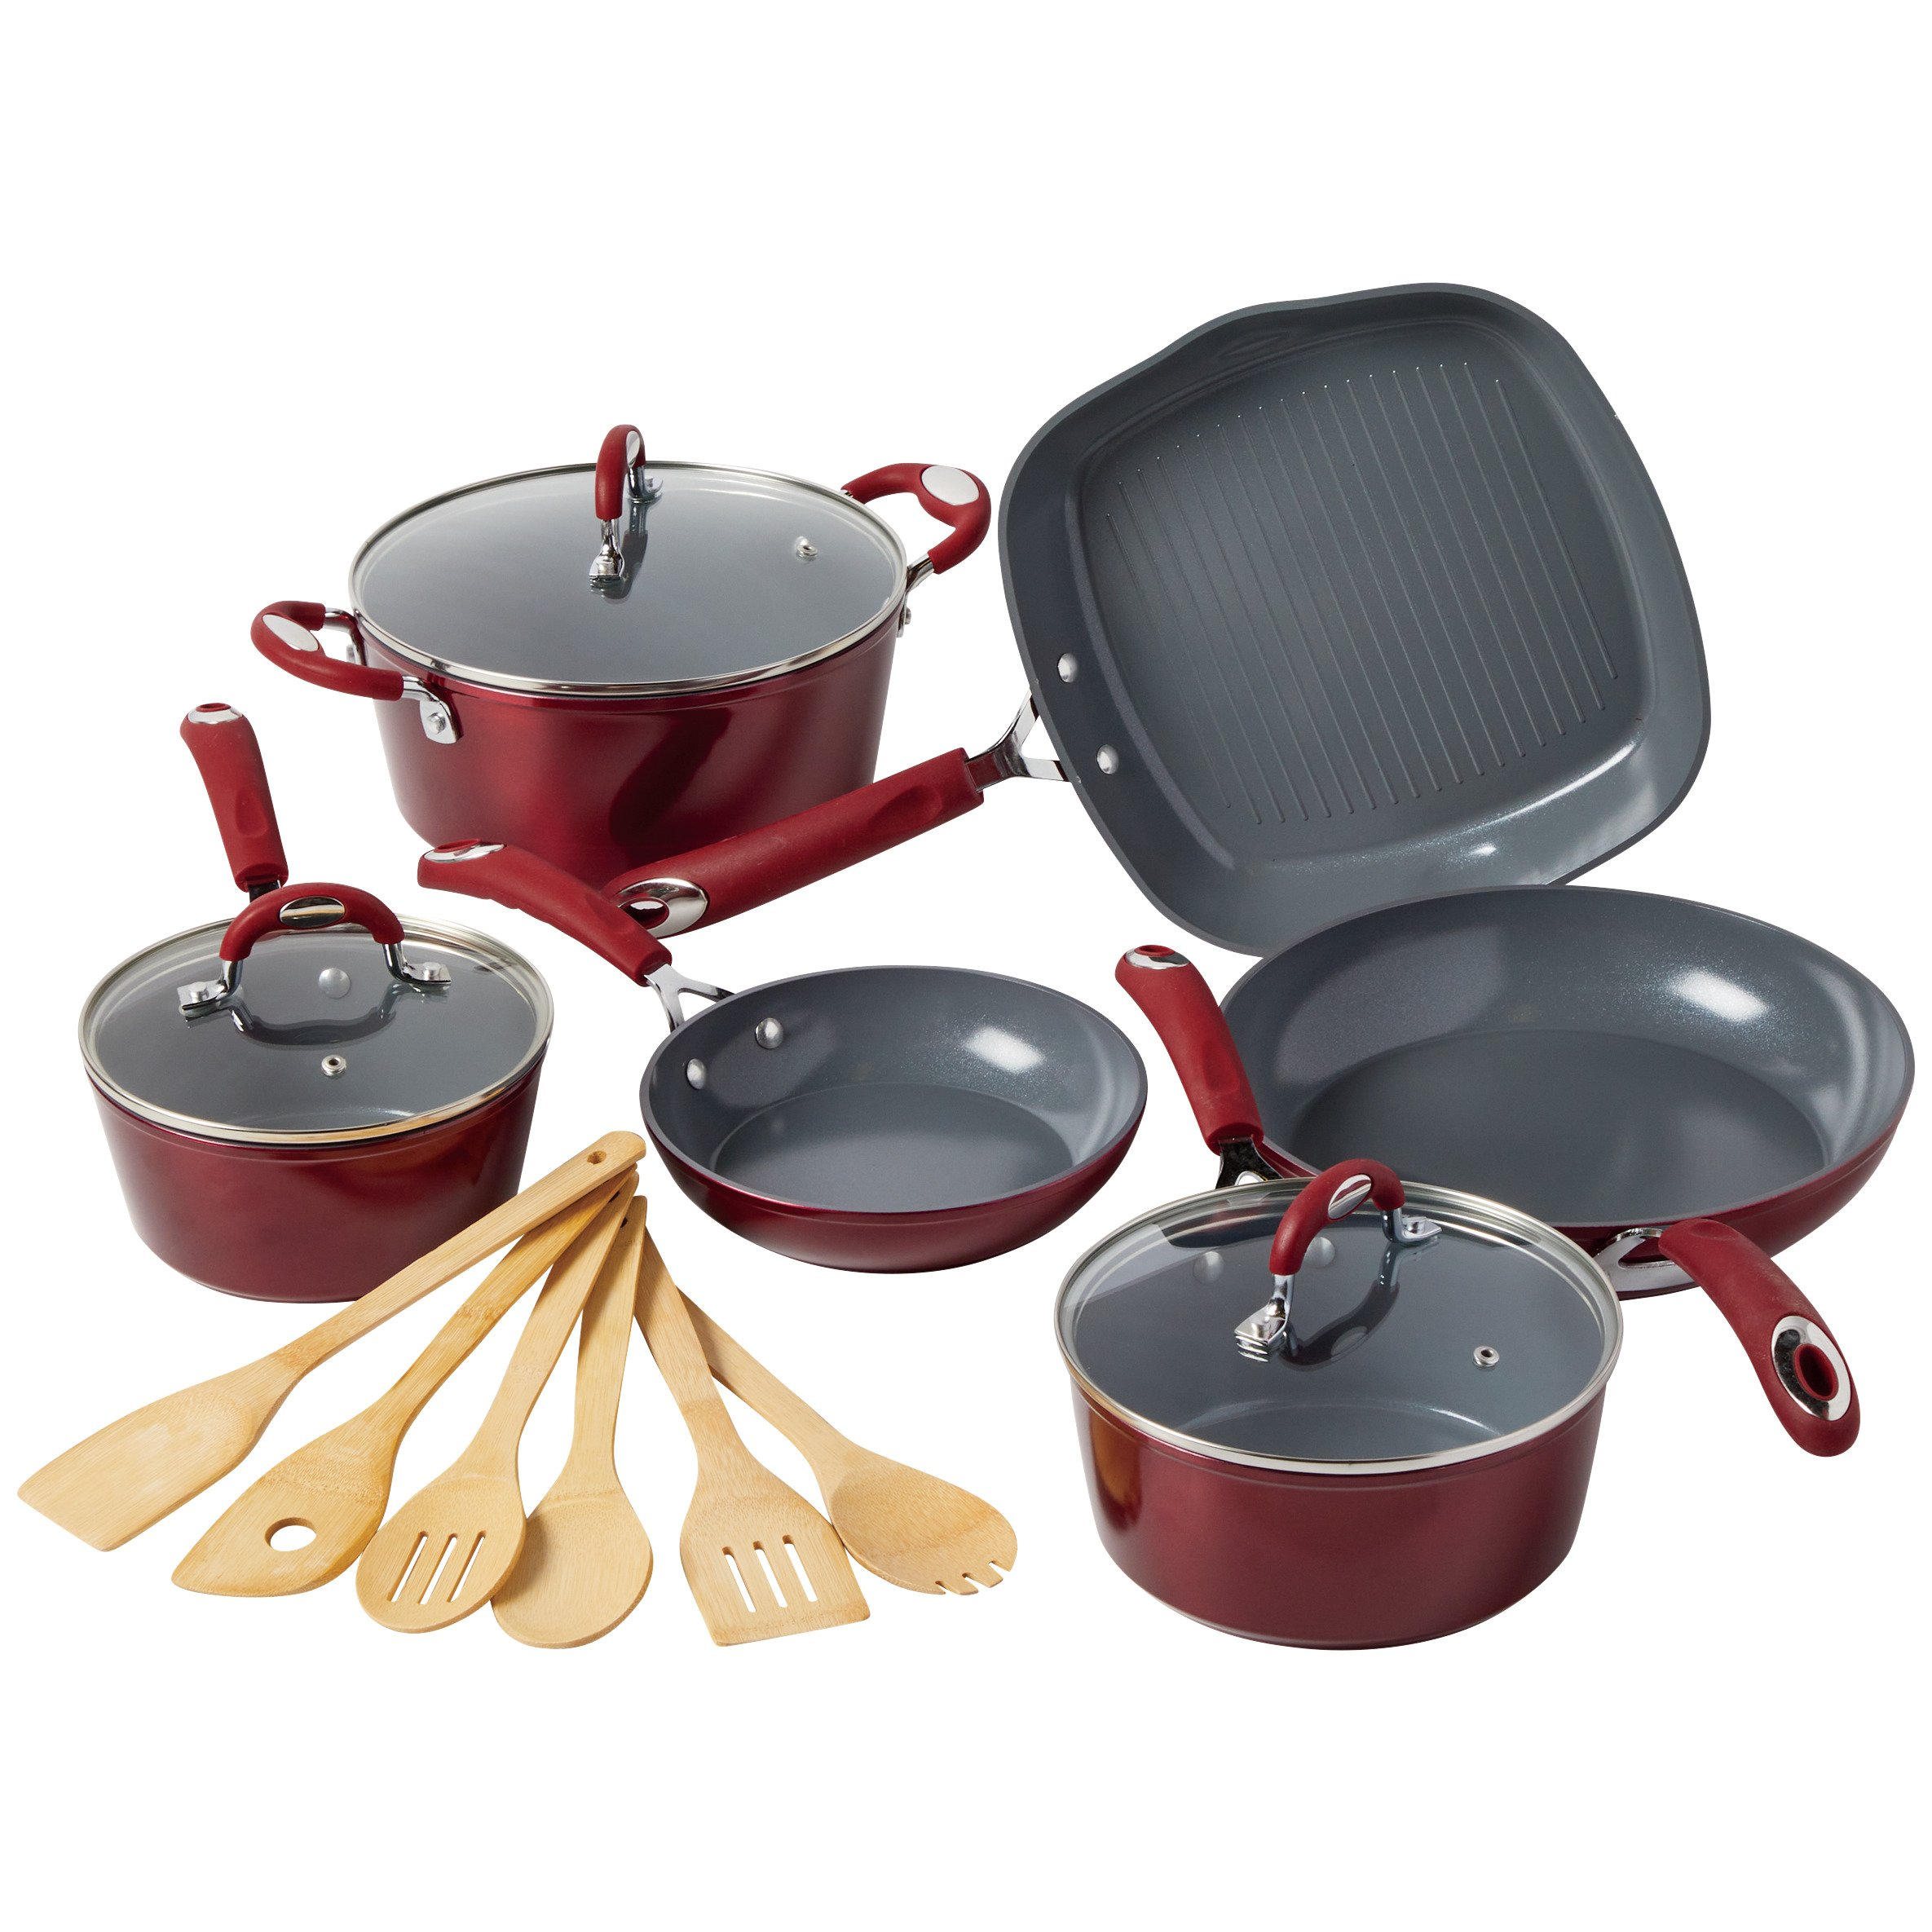 Kitchen and Table Red Cookware Set - Shop Cooking Sets at HEB